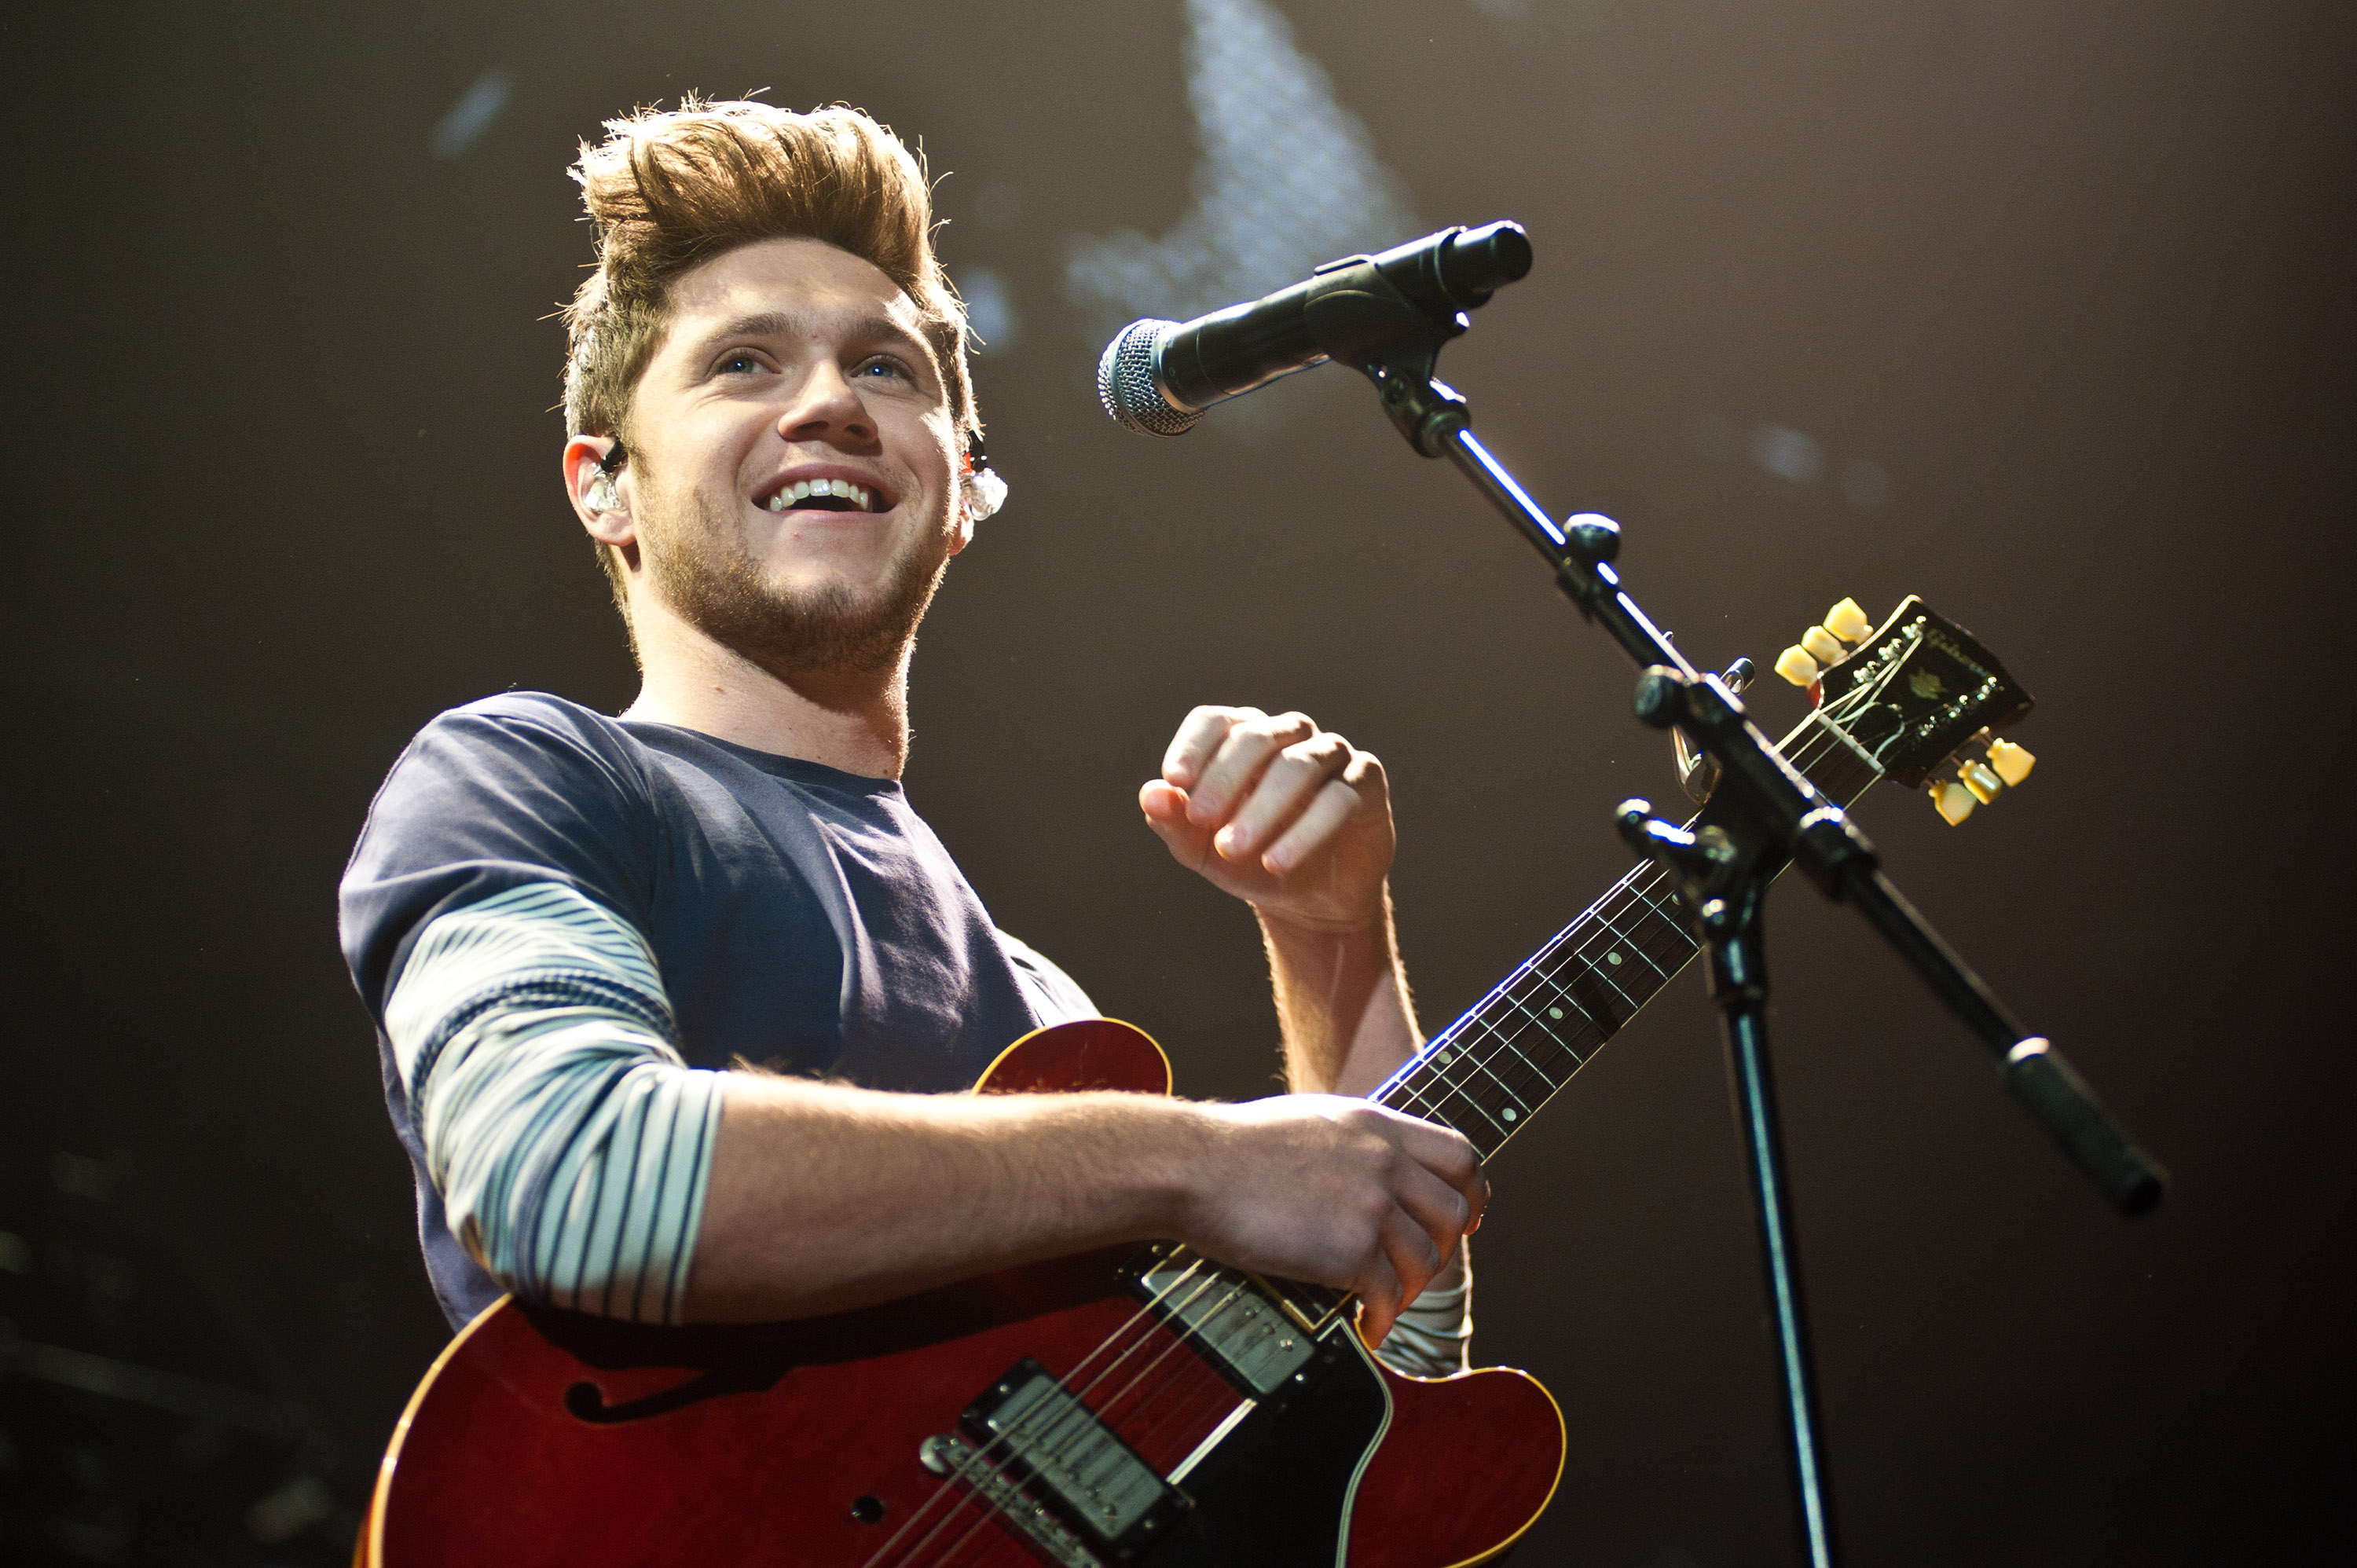 Niall Horan announces new song Slow Hands: 'Haven't been this excited since the Sega came out'